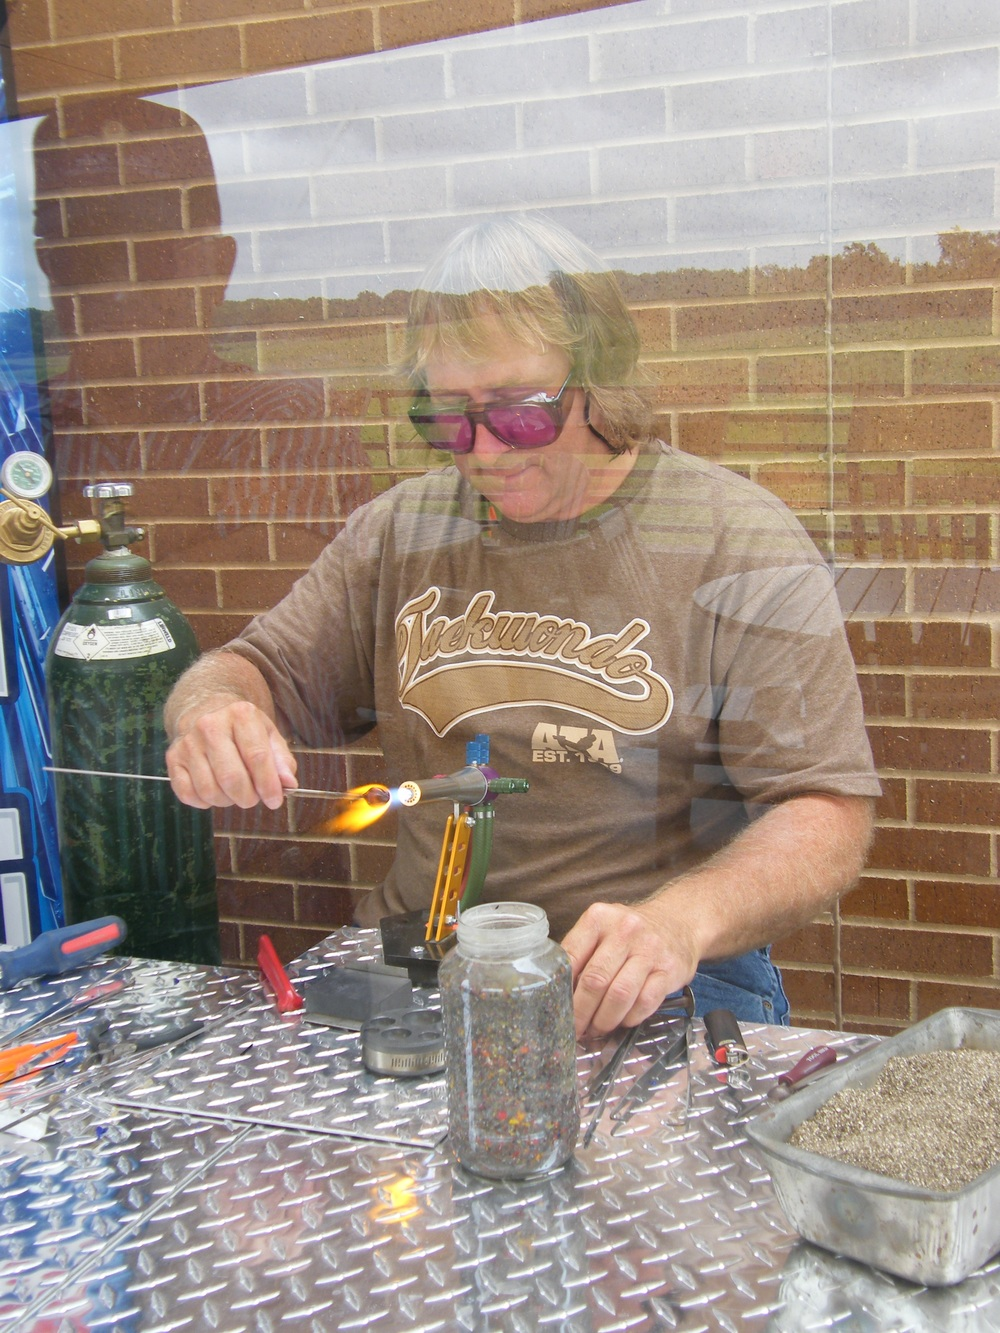 Chris Witulski with his cool lampwork torch, making marbles